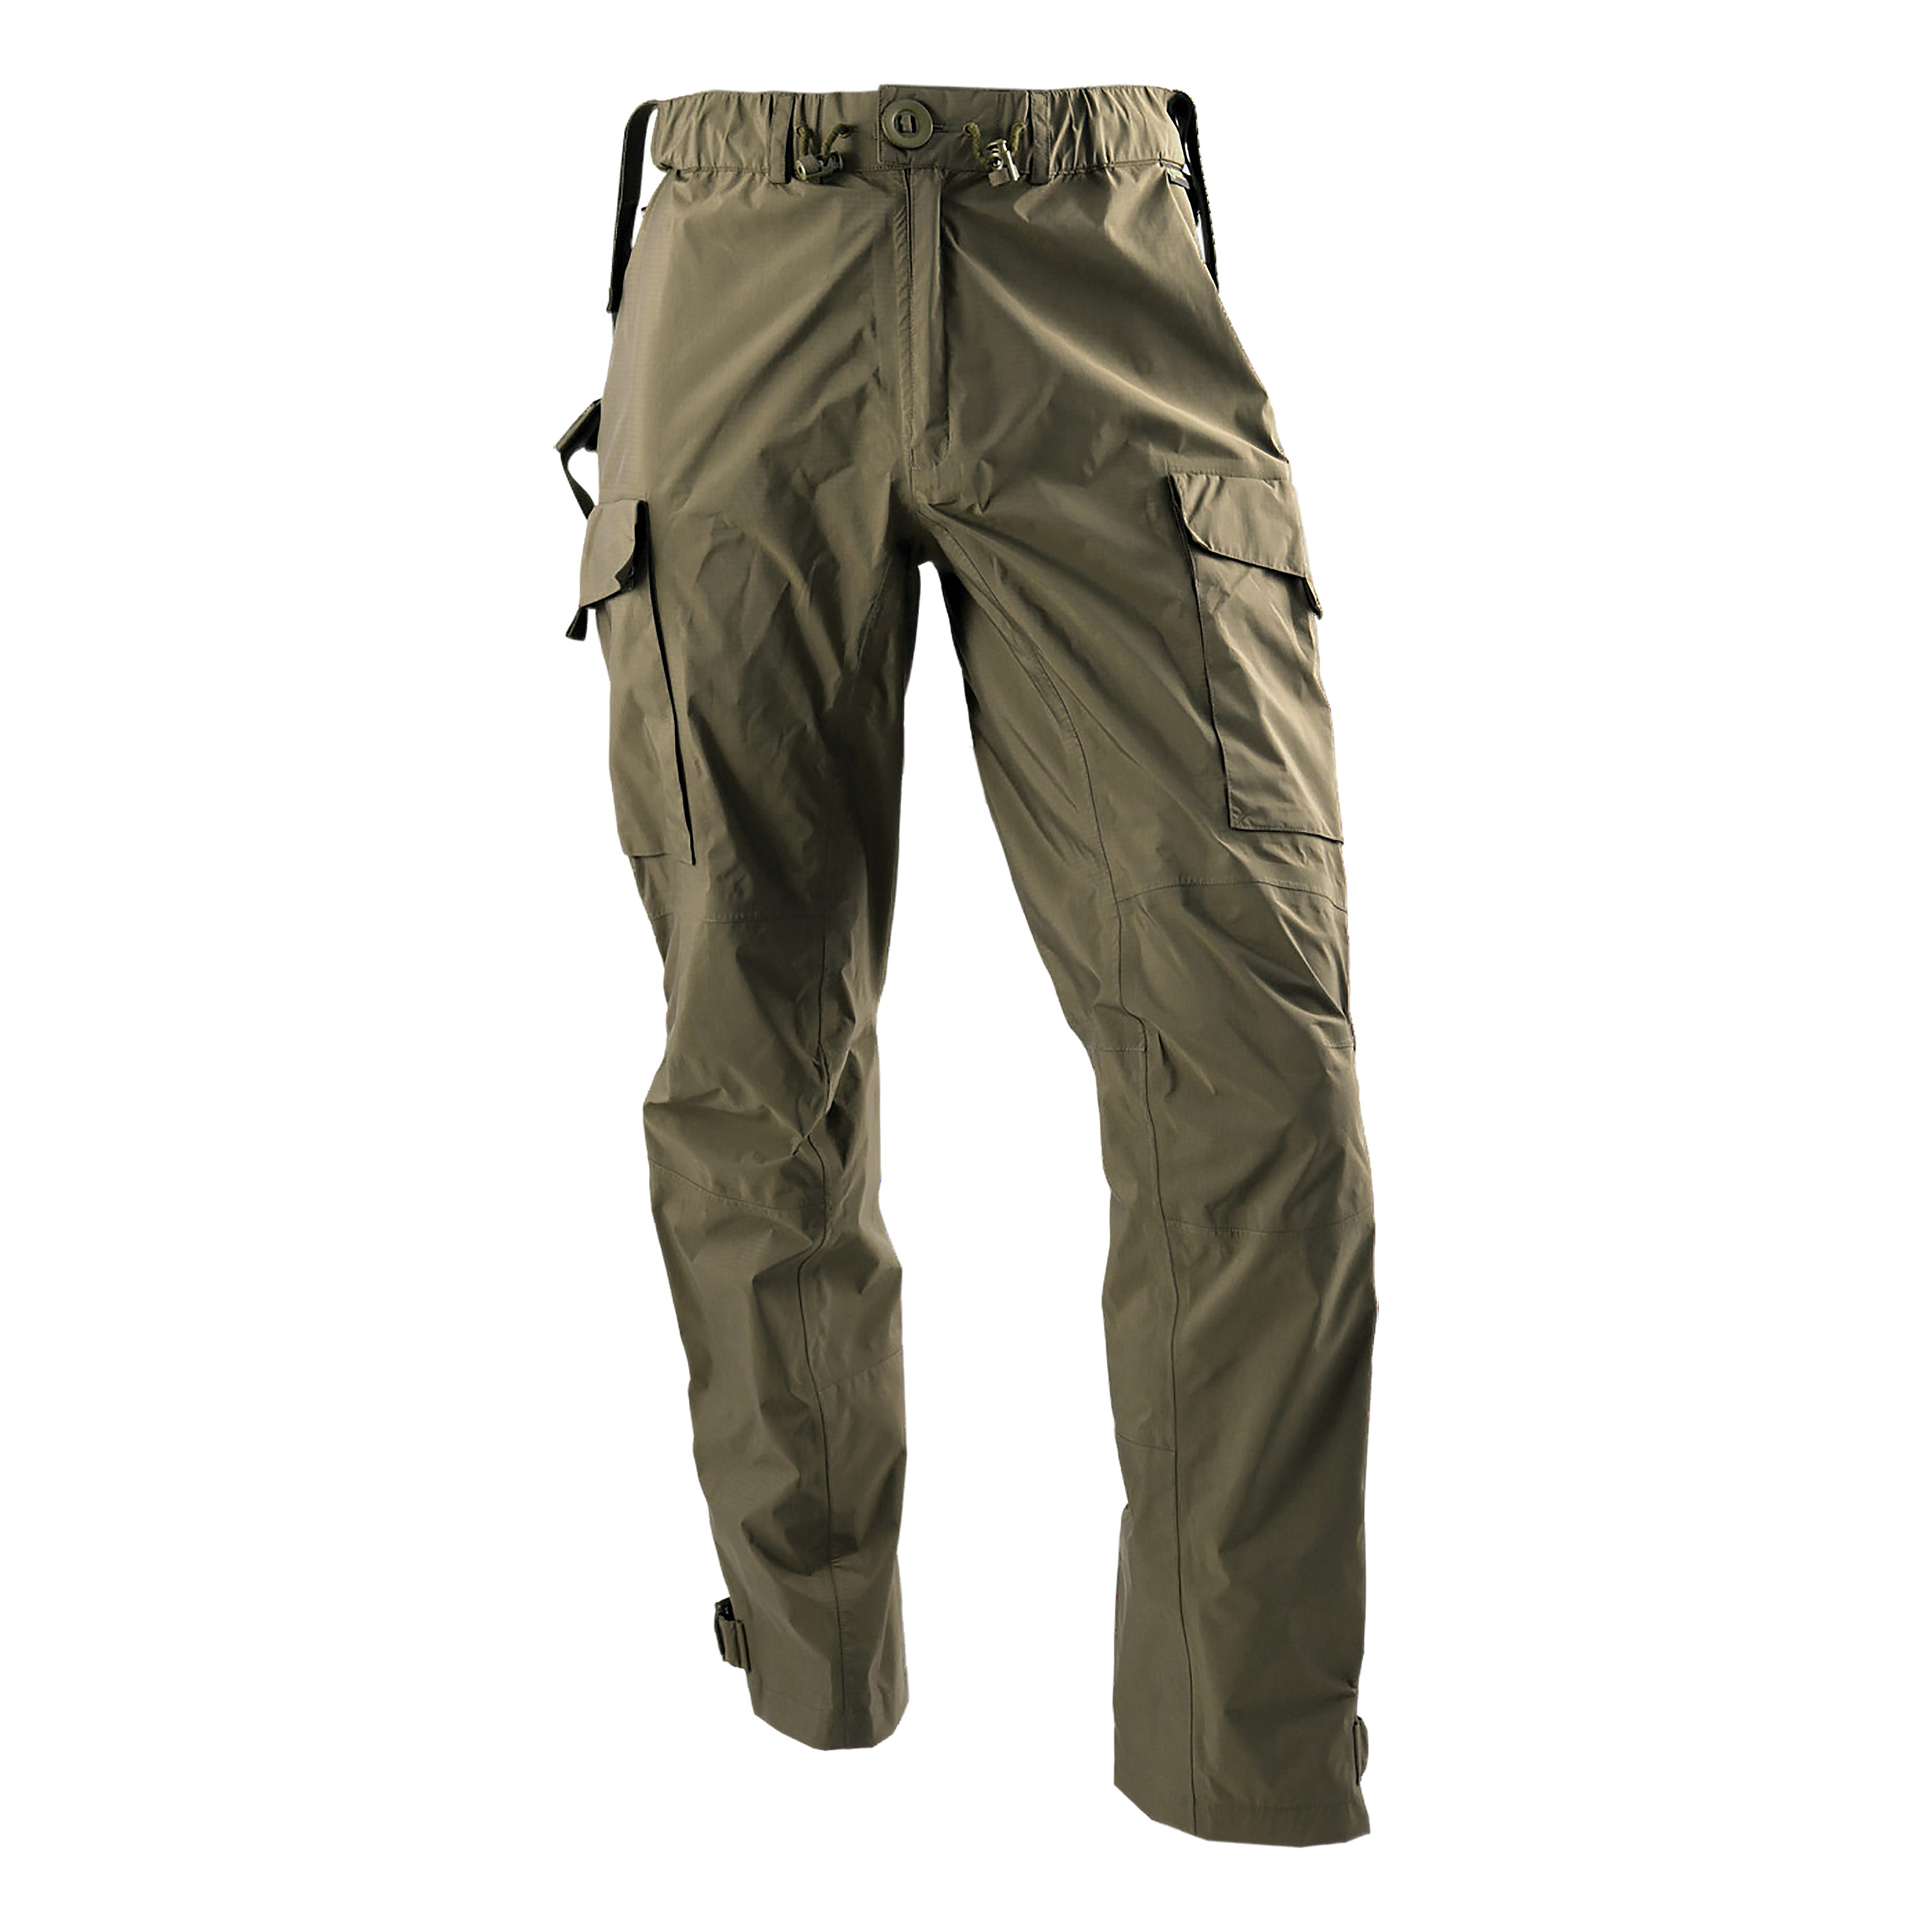 Wet Weather Pants Carinthia Tactical olive